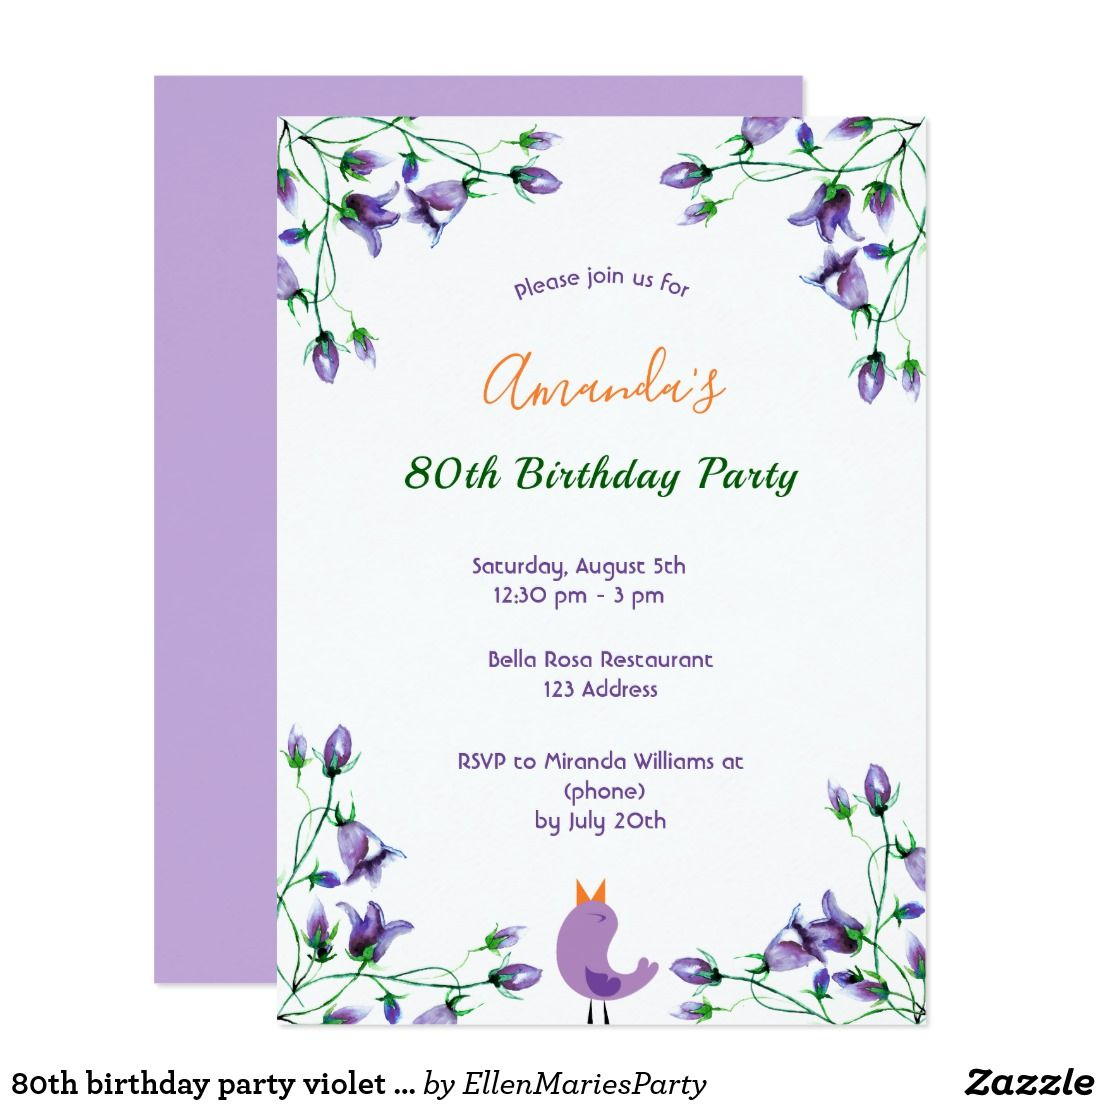 80th birthday party violet florals bluebells white